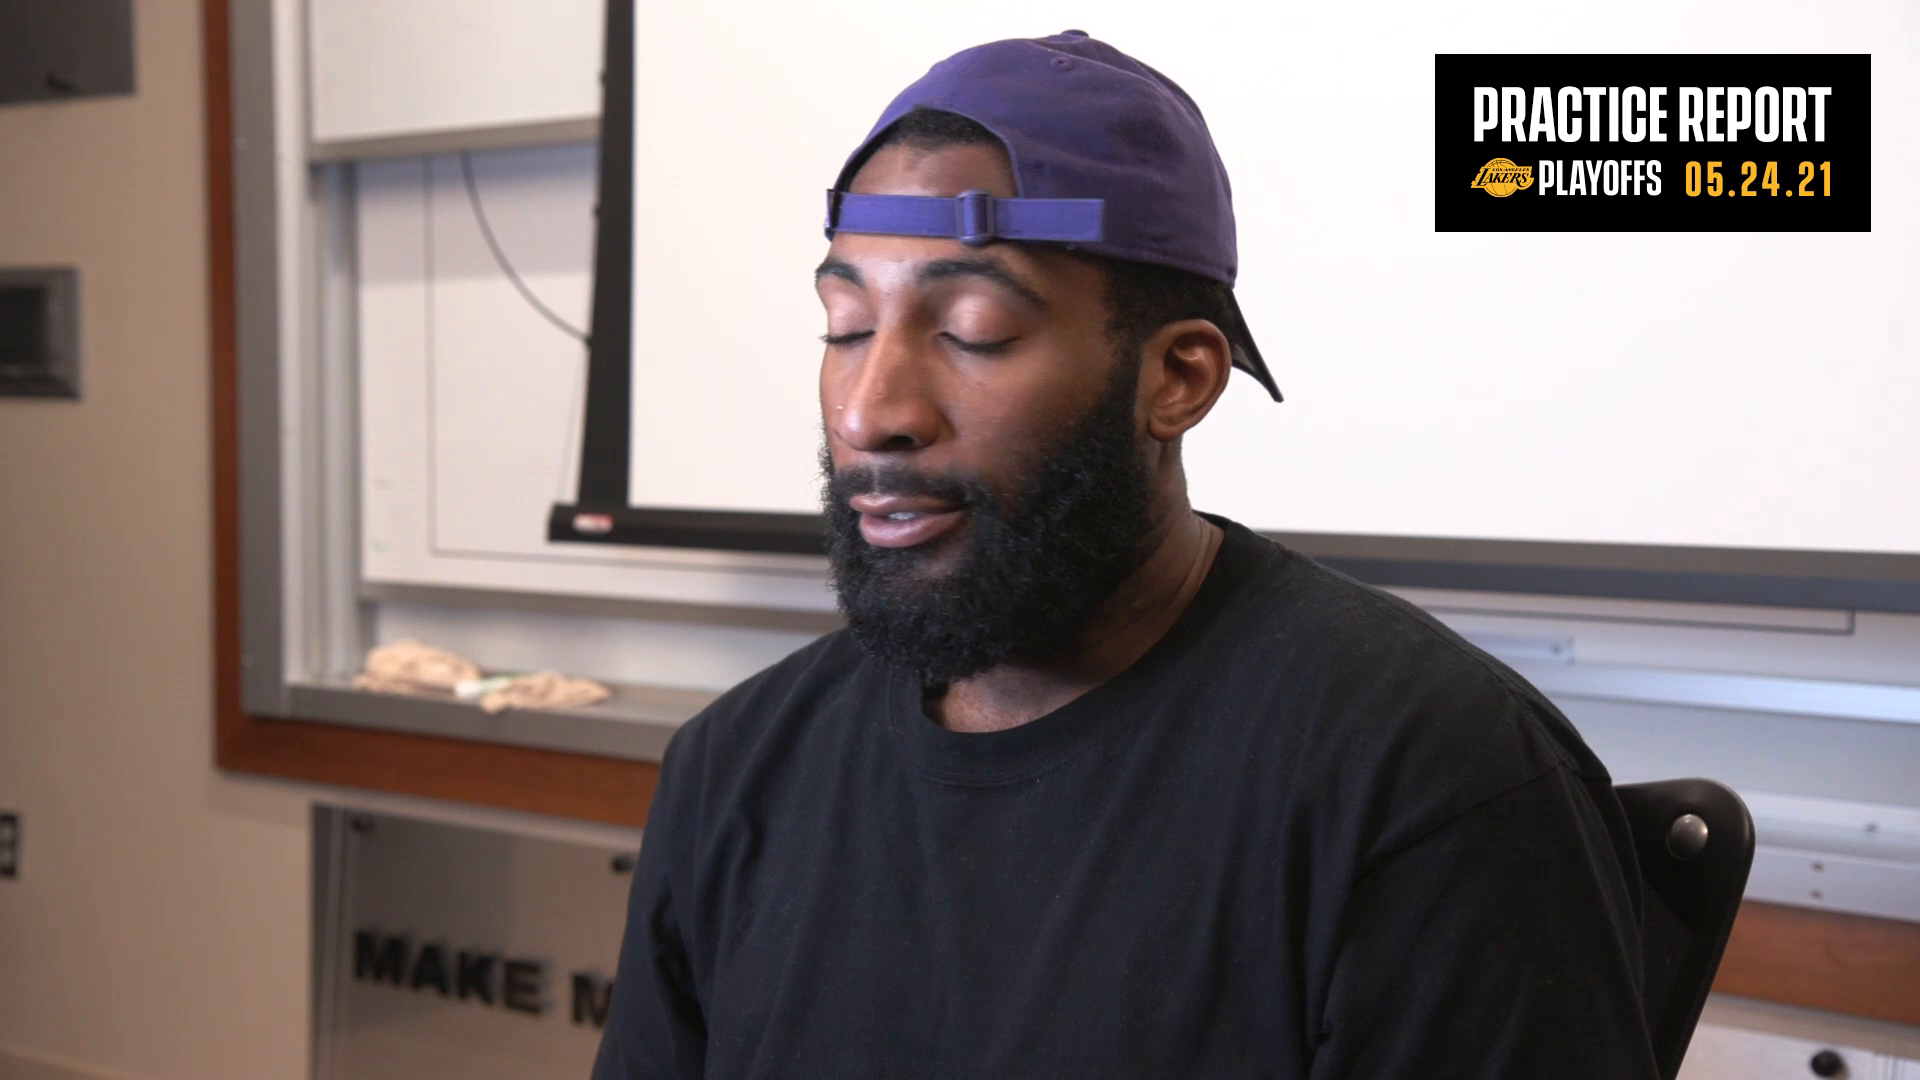 Lakers Practice Report: Andre Drummond (5/24/21)